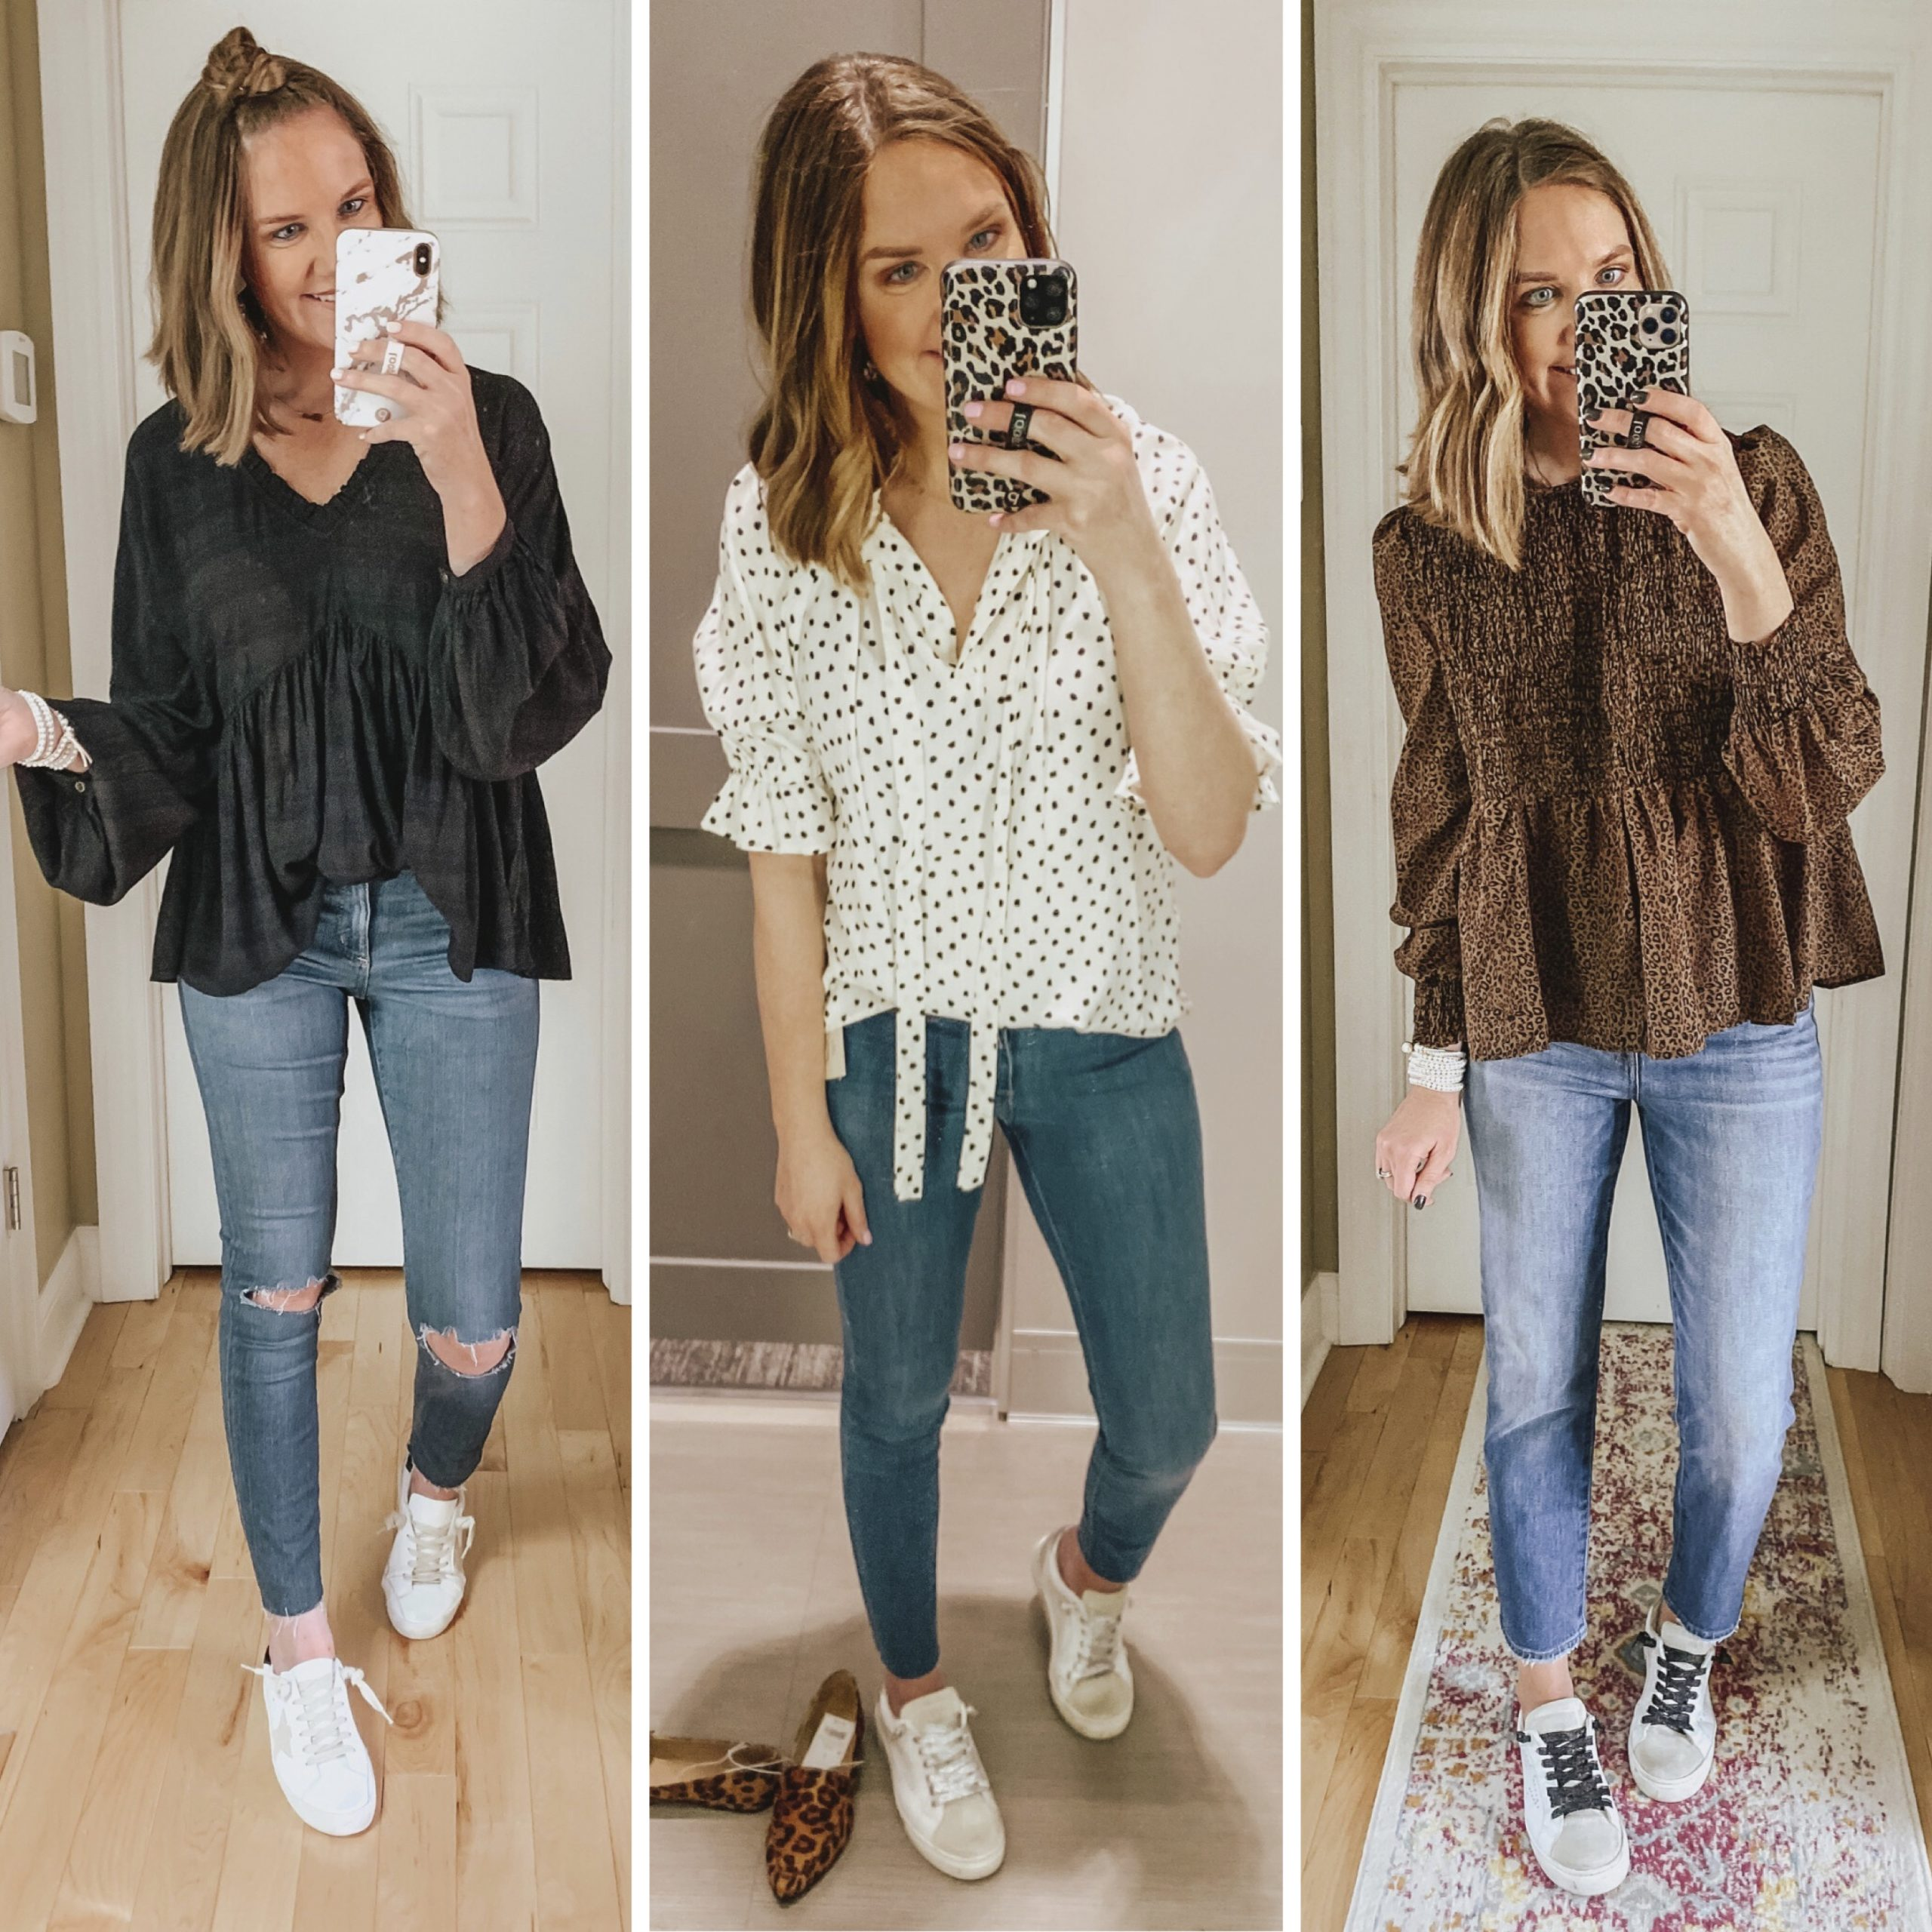 sneakers-and-a-feminine-blouse - Wishes